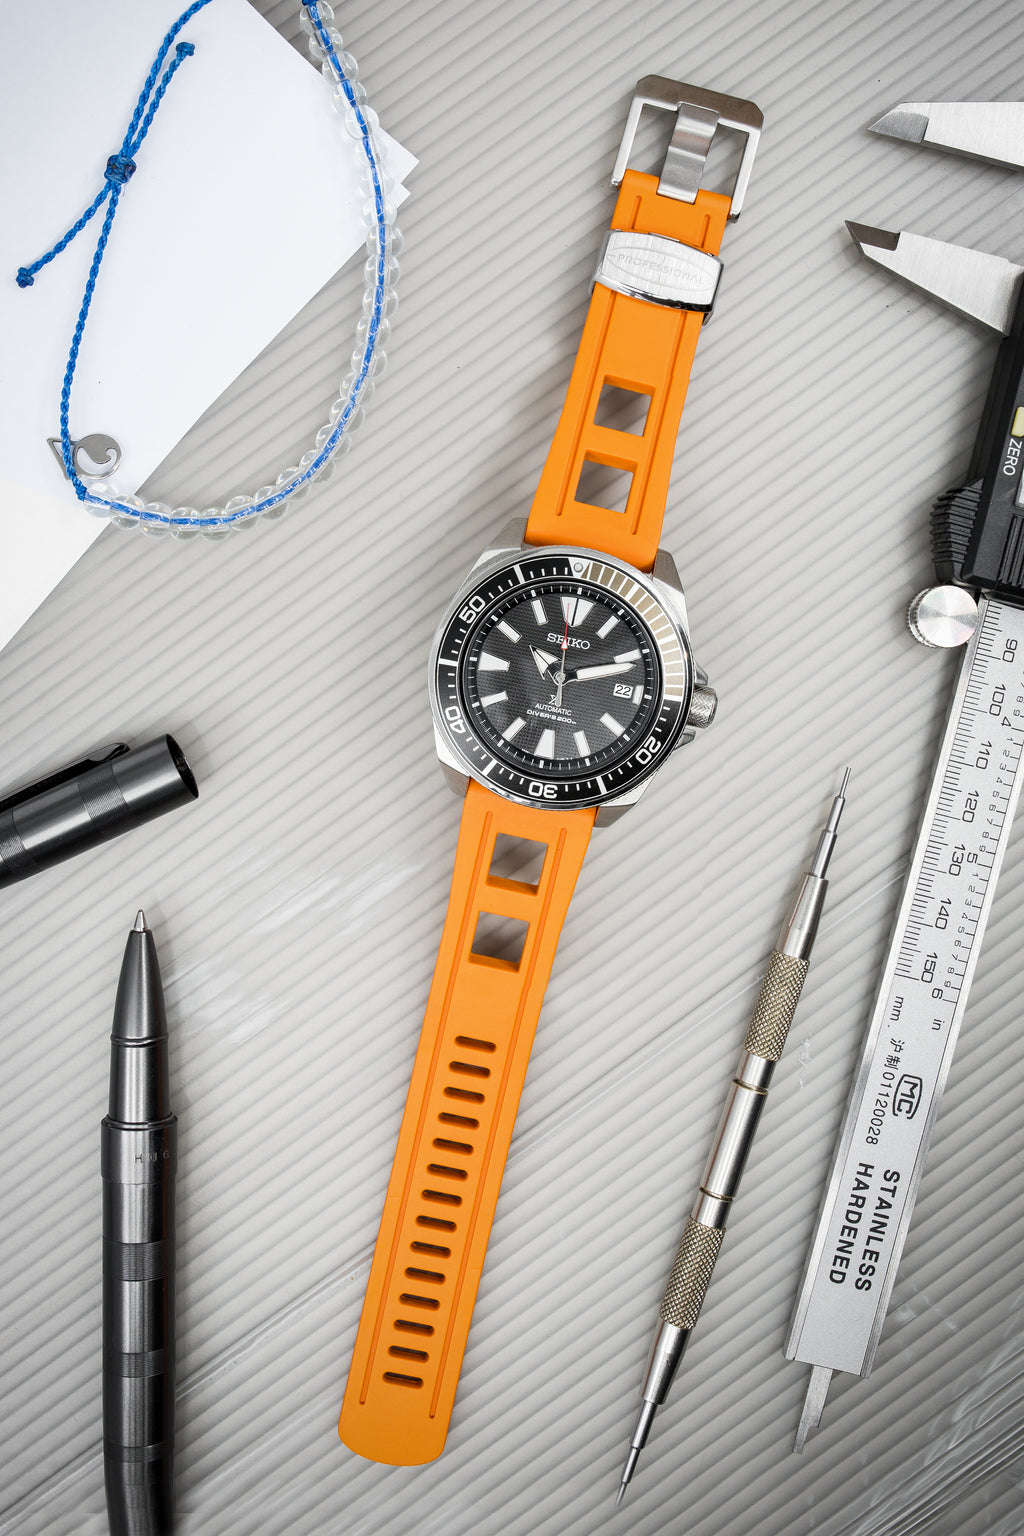 CRAFTER BLUE Universal 22mm Watch Strap for Professional Dive Watch – ORANGE